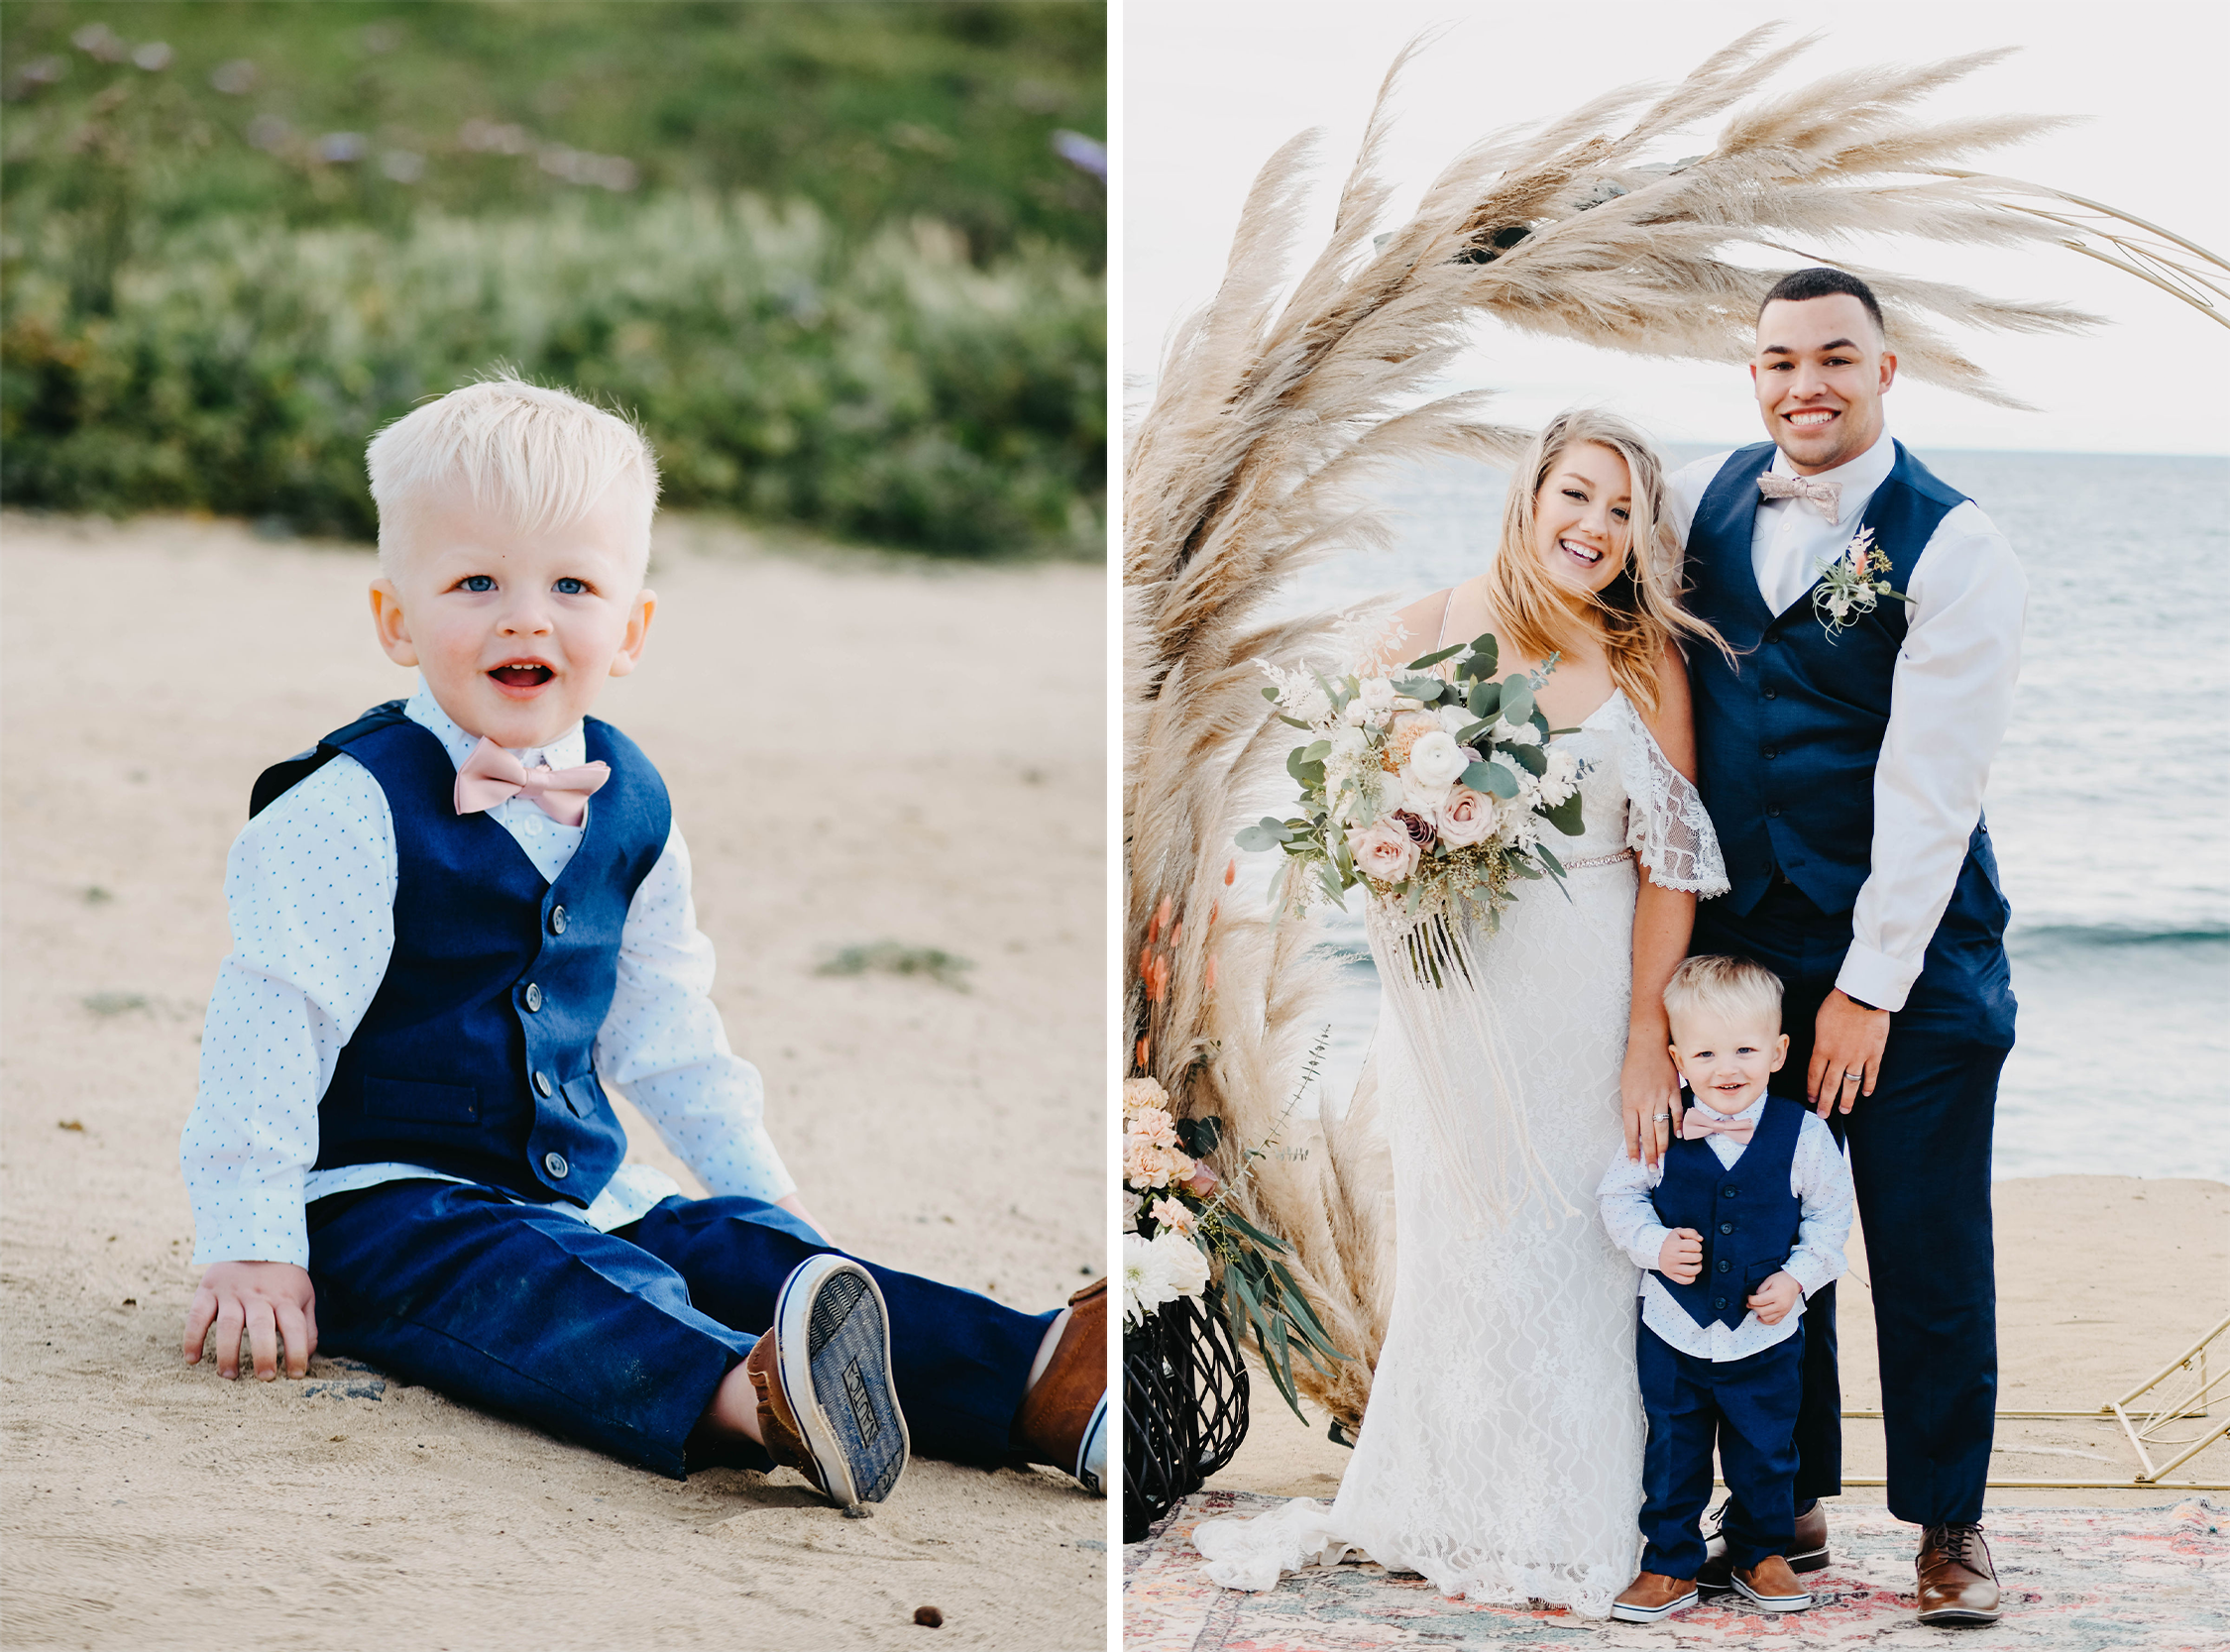 Toddler Son Included in Wedding Day